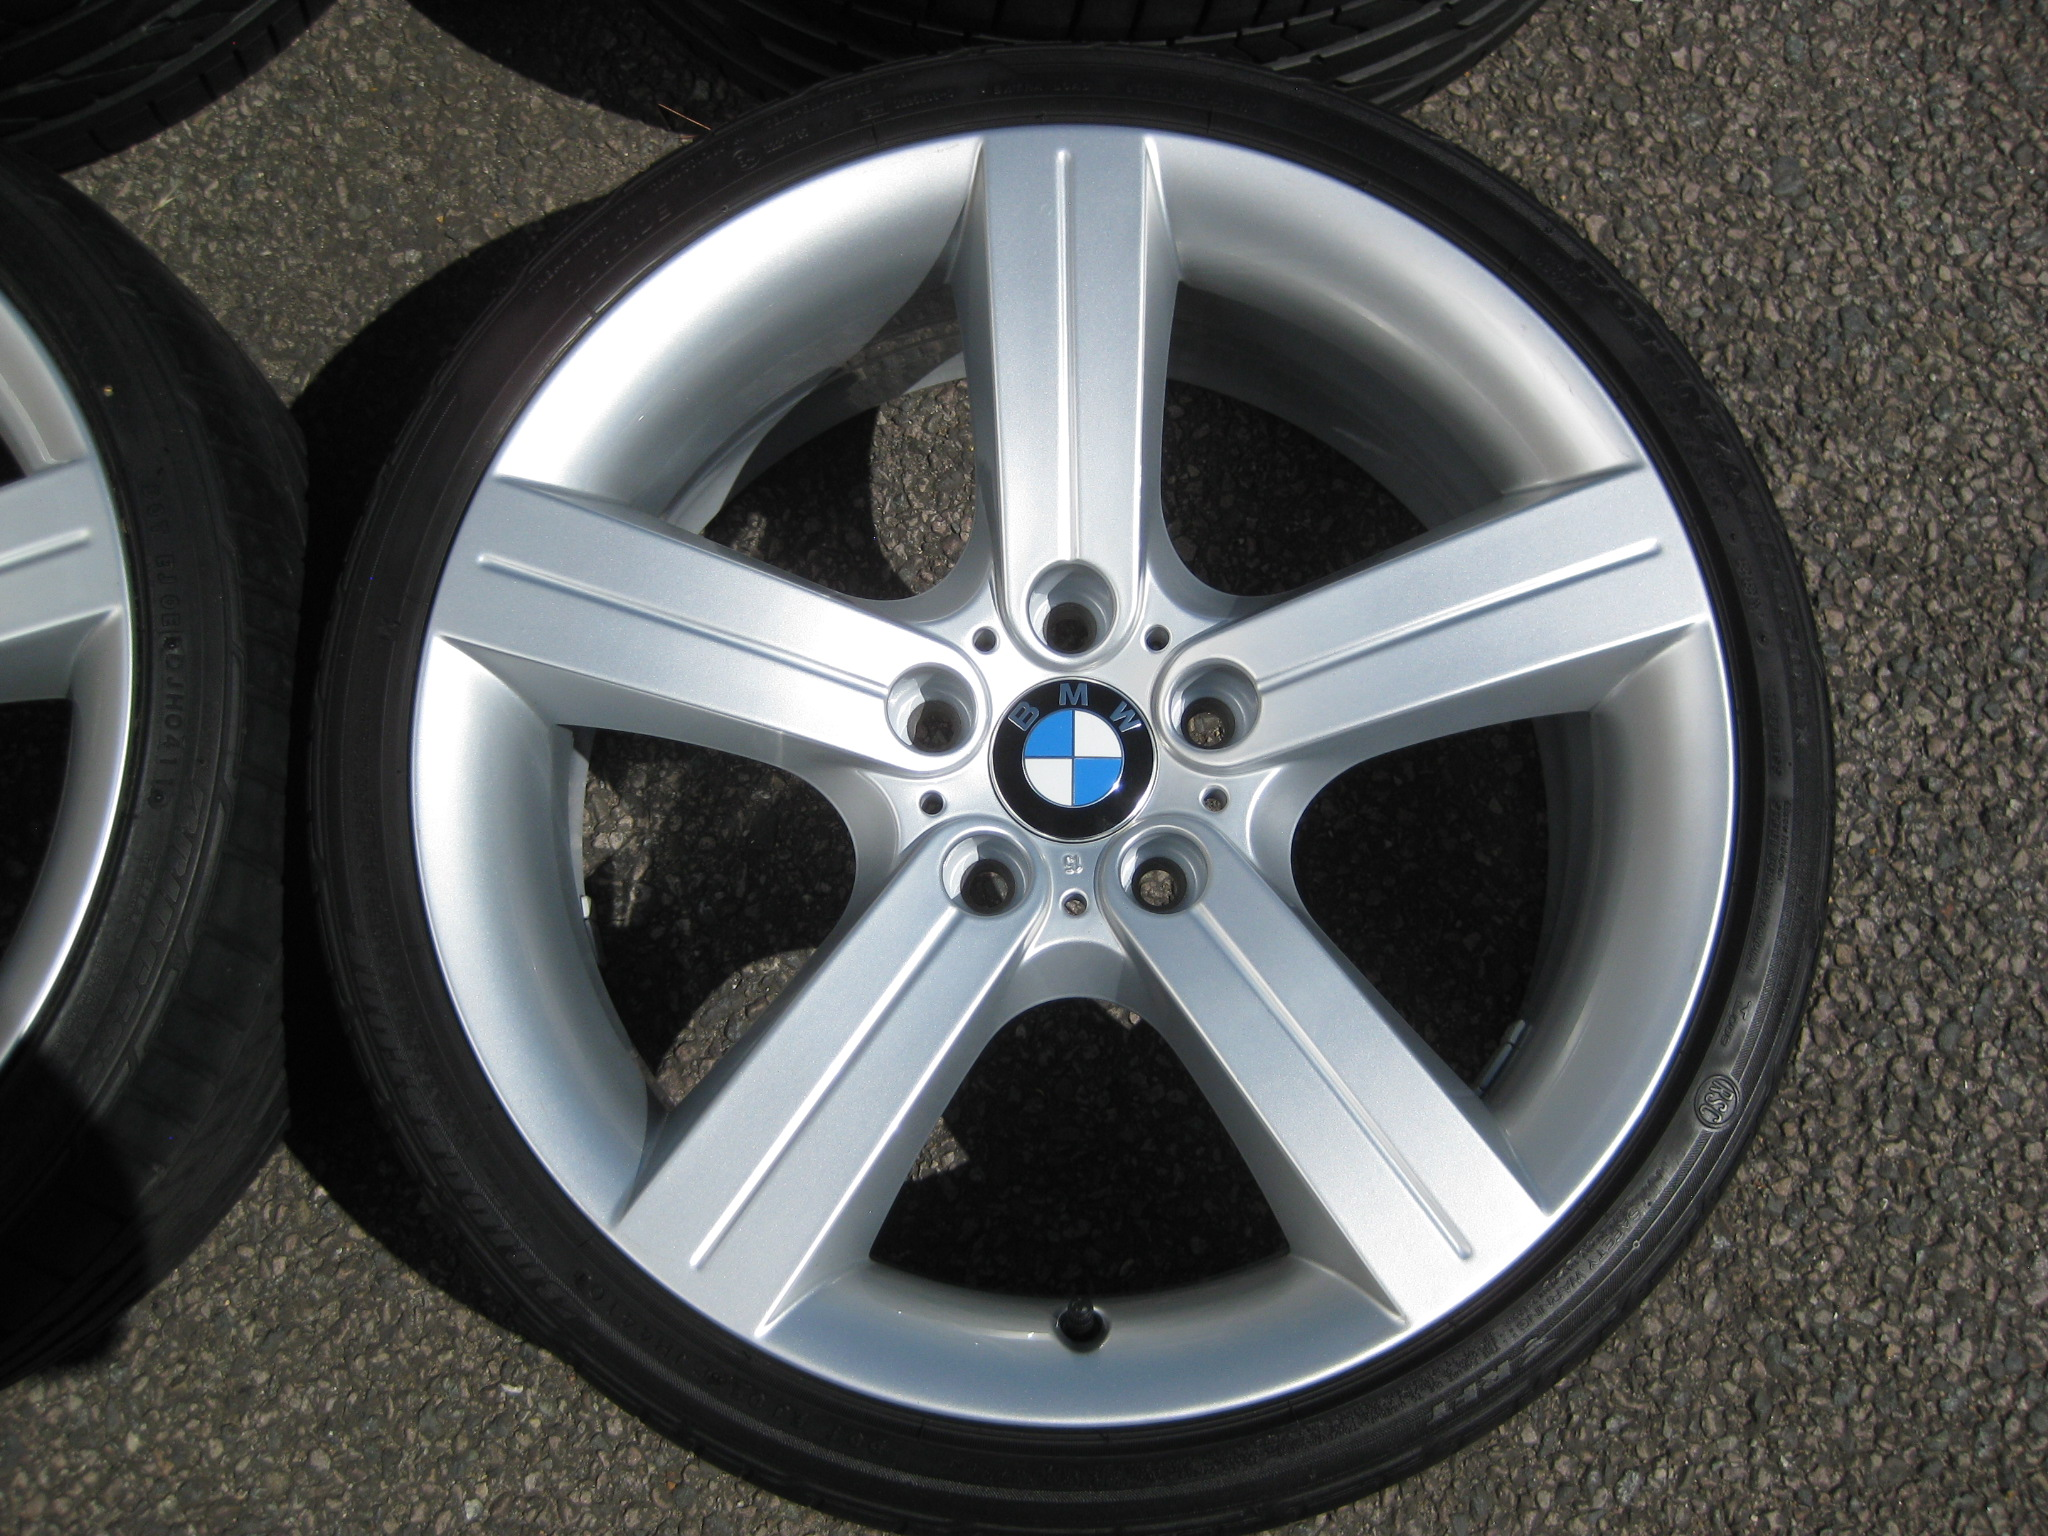 "USED 19"" GENUINE BMW STYLE 199 E92 5 SPOKE ALLOY WHEELS, WIDE REAR, FULLY REFURBED INC GOOD BRIDGESTONE RUNFLAT TYRES"